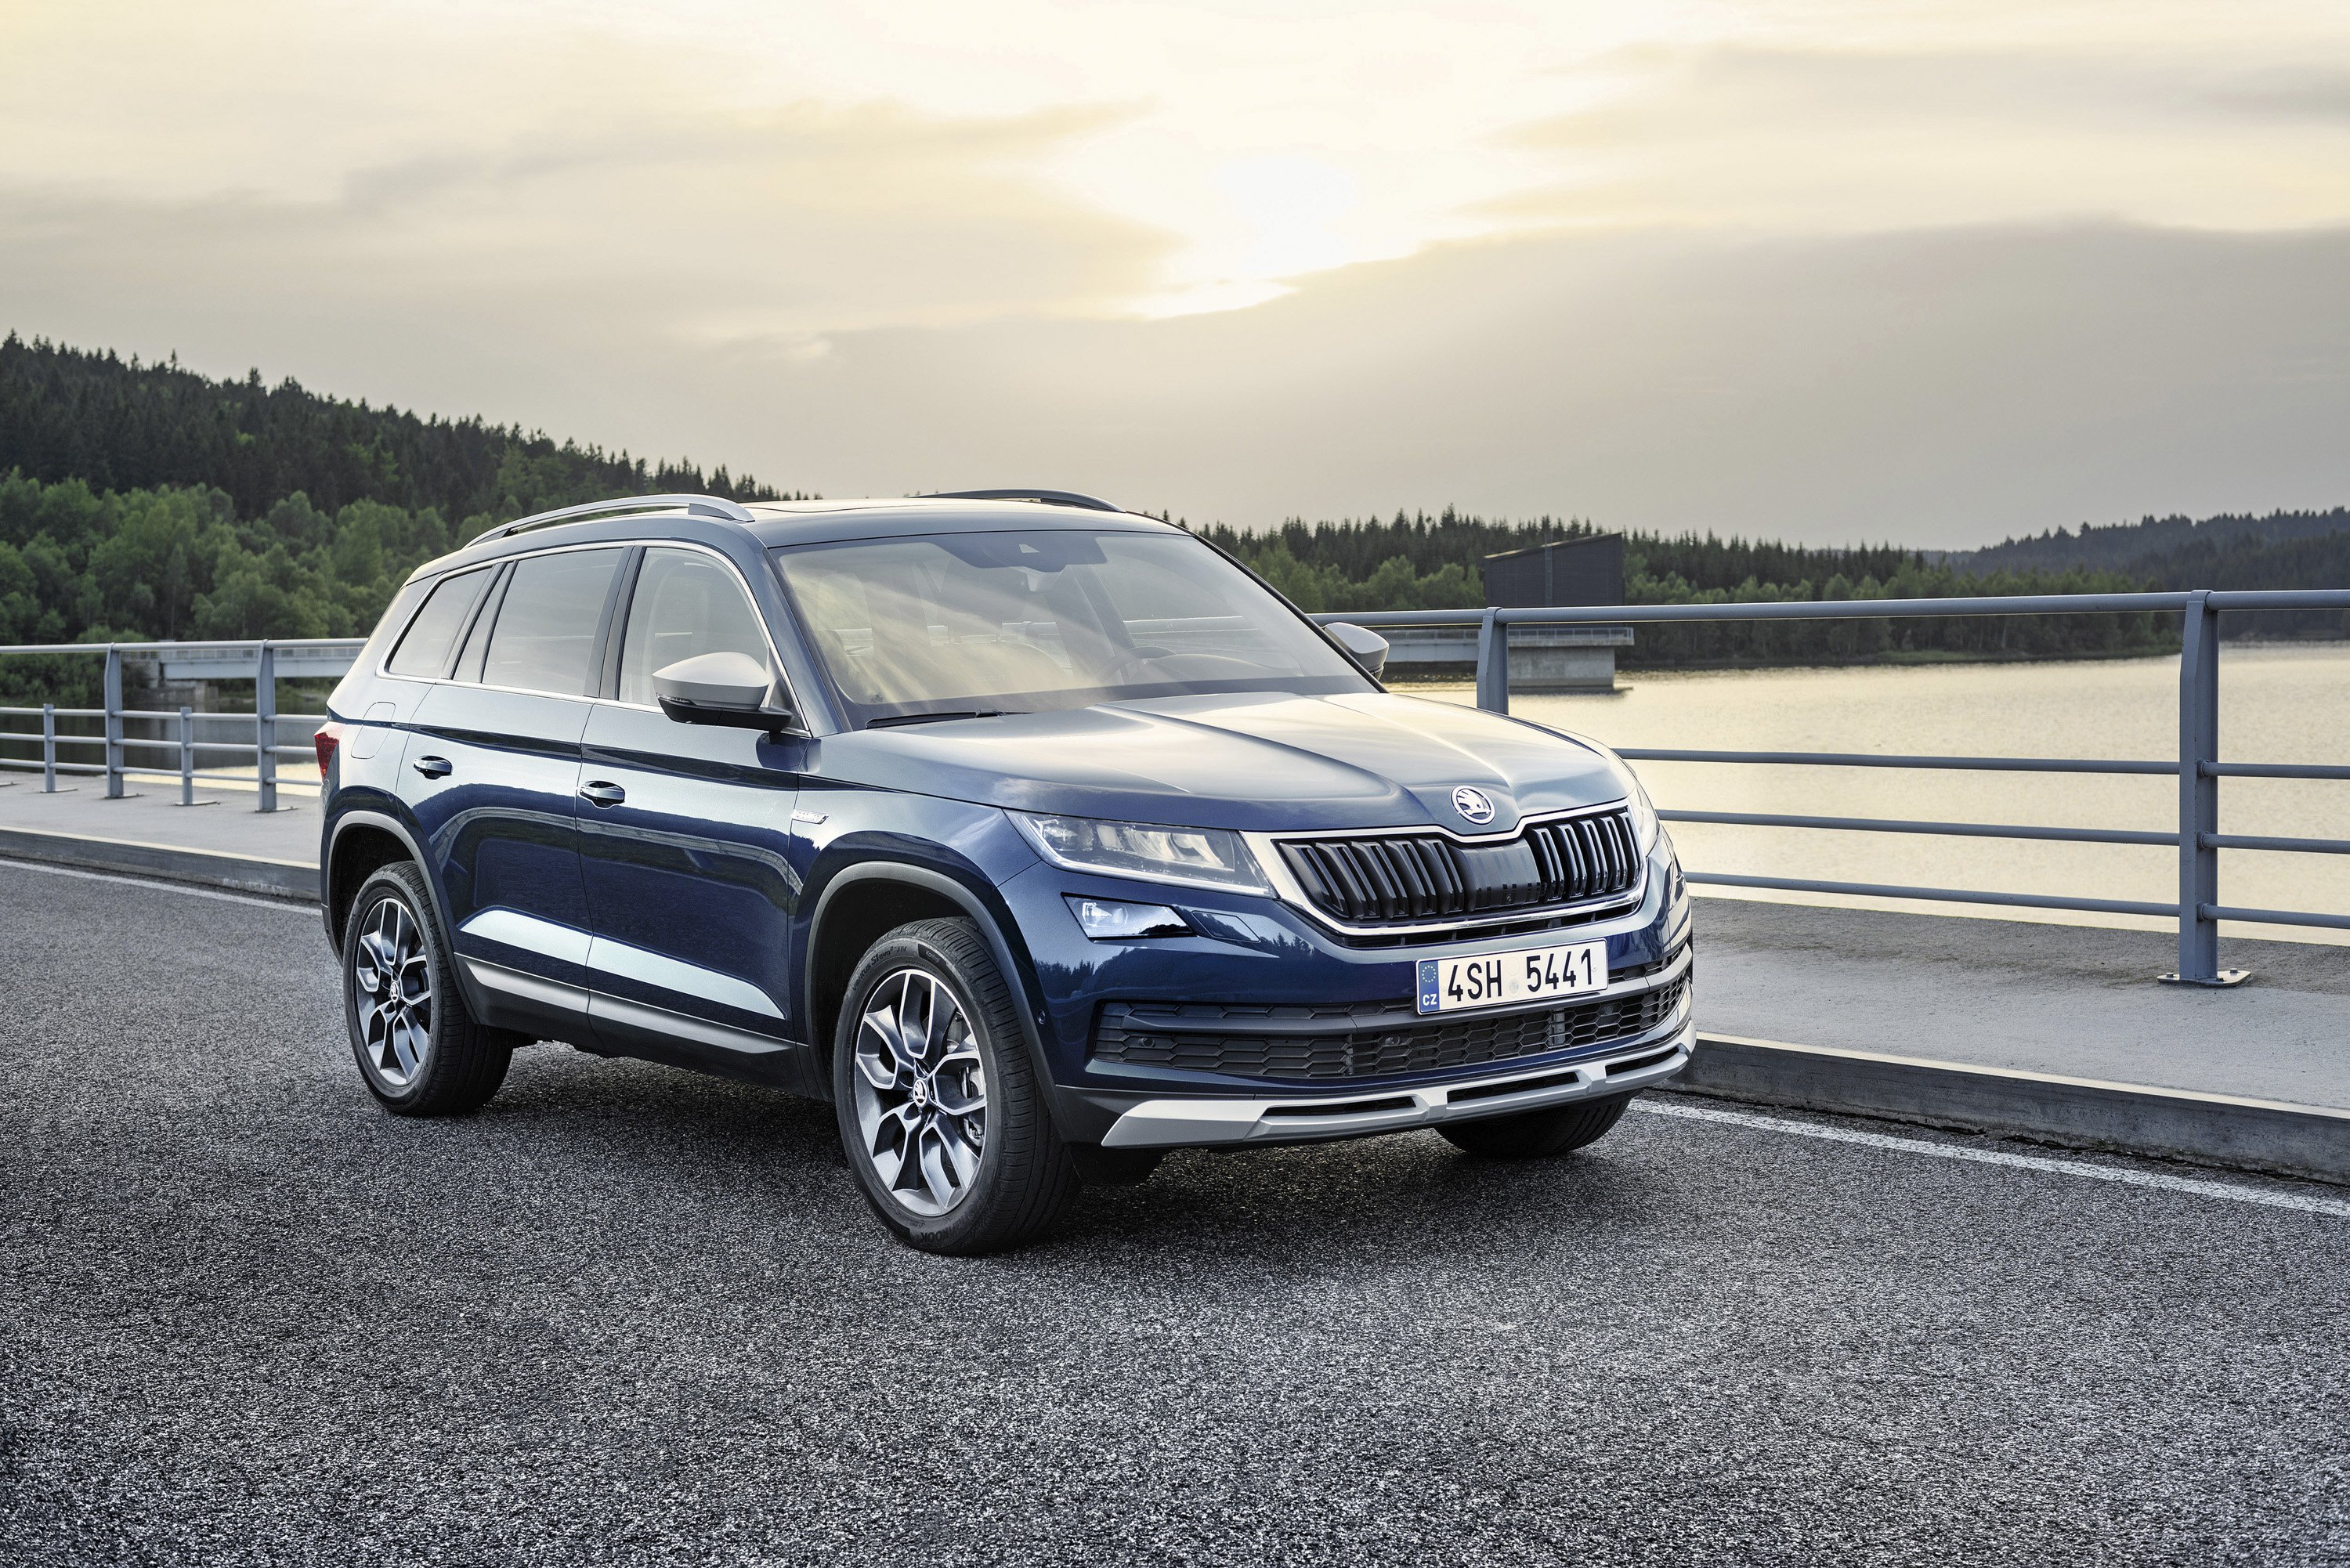 <p>The Scout also benefits from the extra underbody protection afforded by the rough road package, with protection extending over the engine and drivetrain.</p>